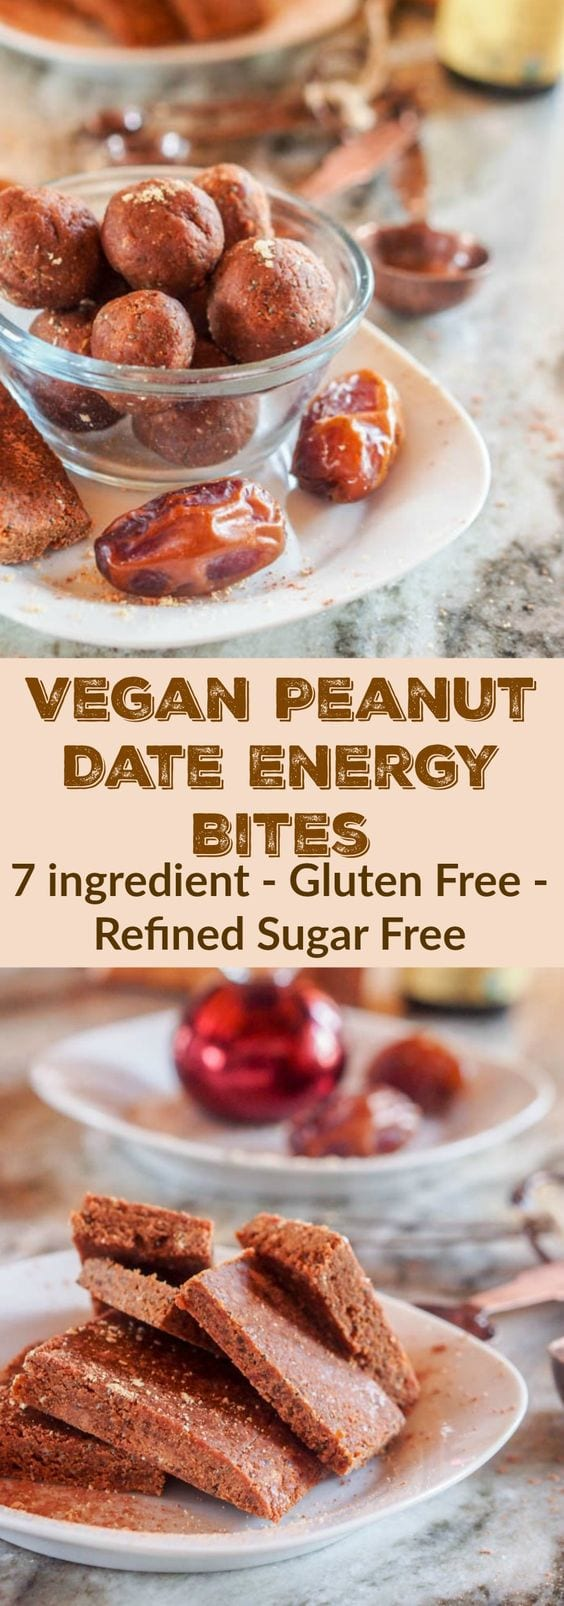 7 ingredient vegan peanut date energy bites that are also gluten-free, sugar-free and packed full of delicious hearty ingredients! Under 100 calories per ball with 2.5 grams of protein! #dessert #snack #peanutbutter #StartWithJifPowder #CollectiveBias #ad